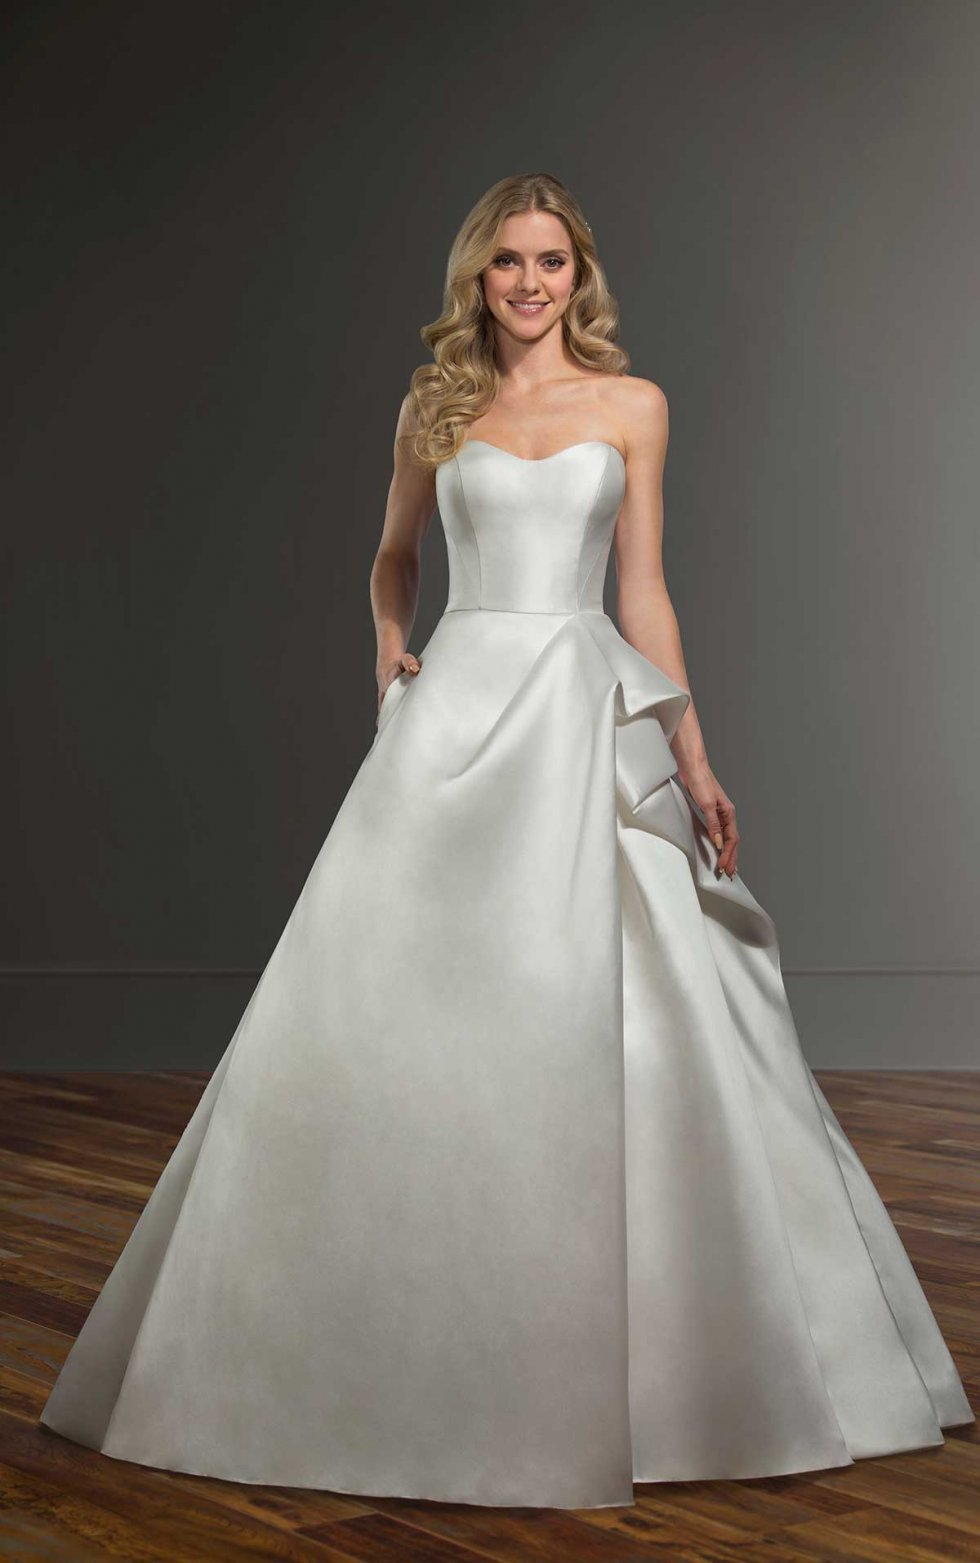 Martina Liana - #1027 (US Size 6) **NEVER WORN, UNALTERED, NEW WITH TAGS**  size 10 - $1250 - (58% OFF)